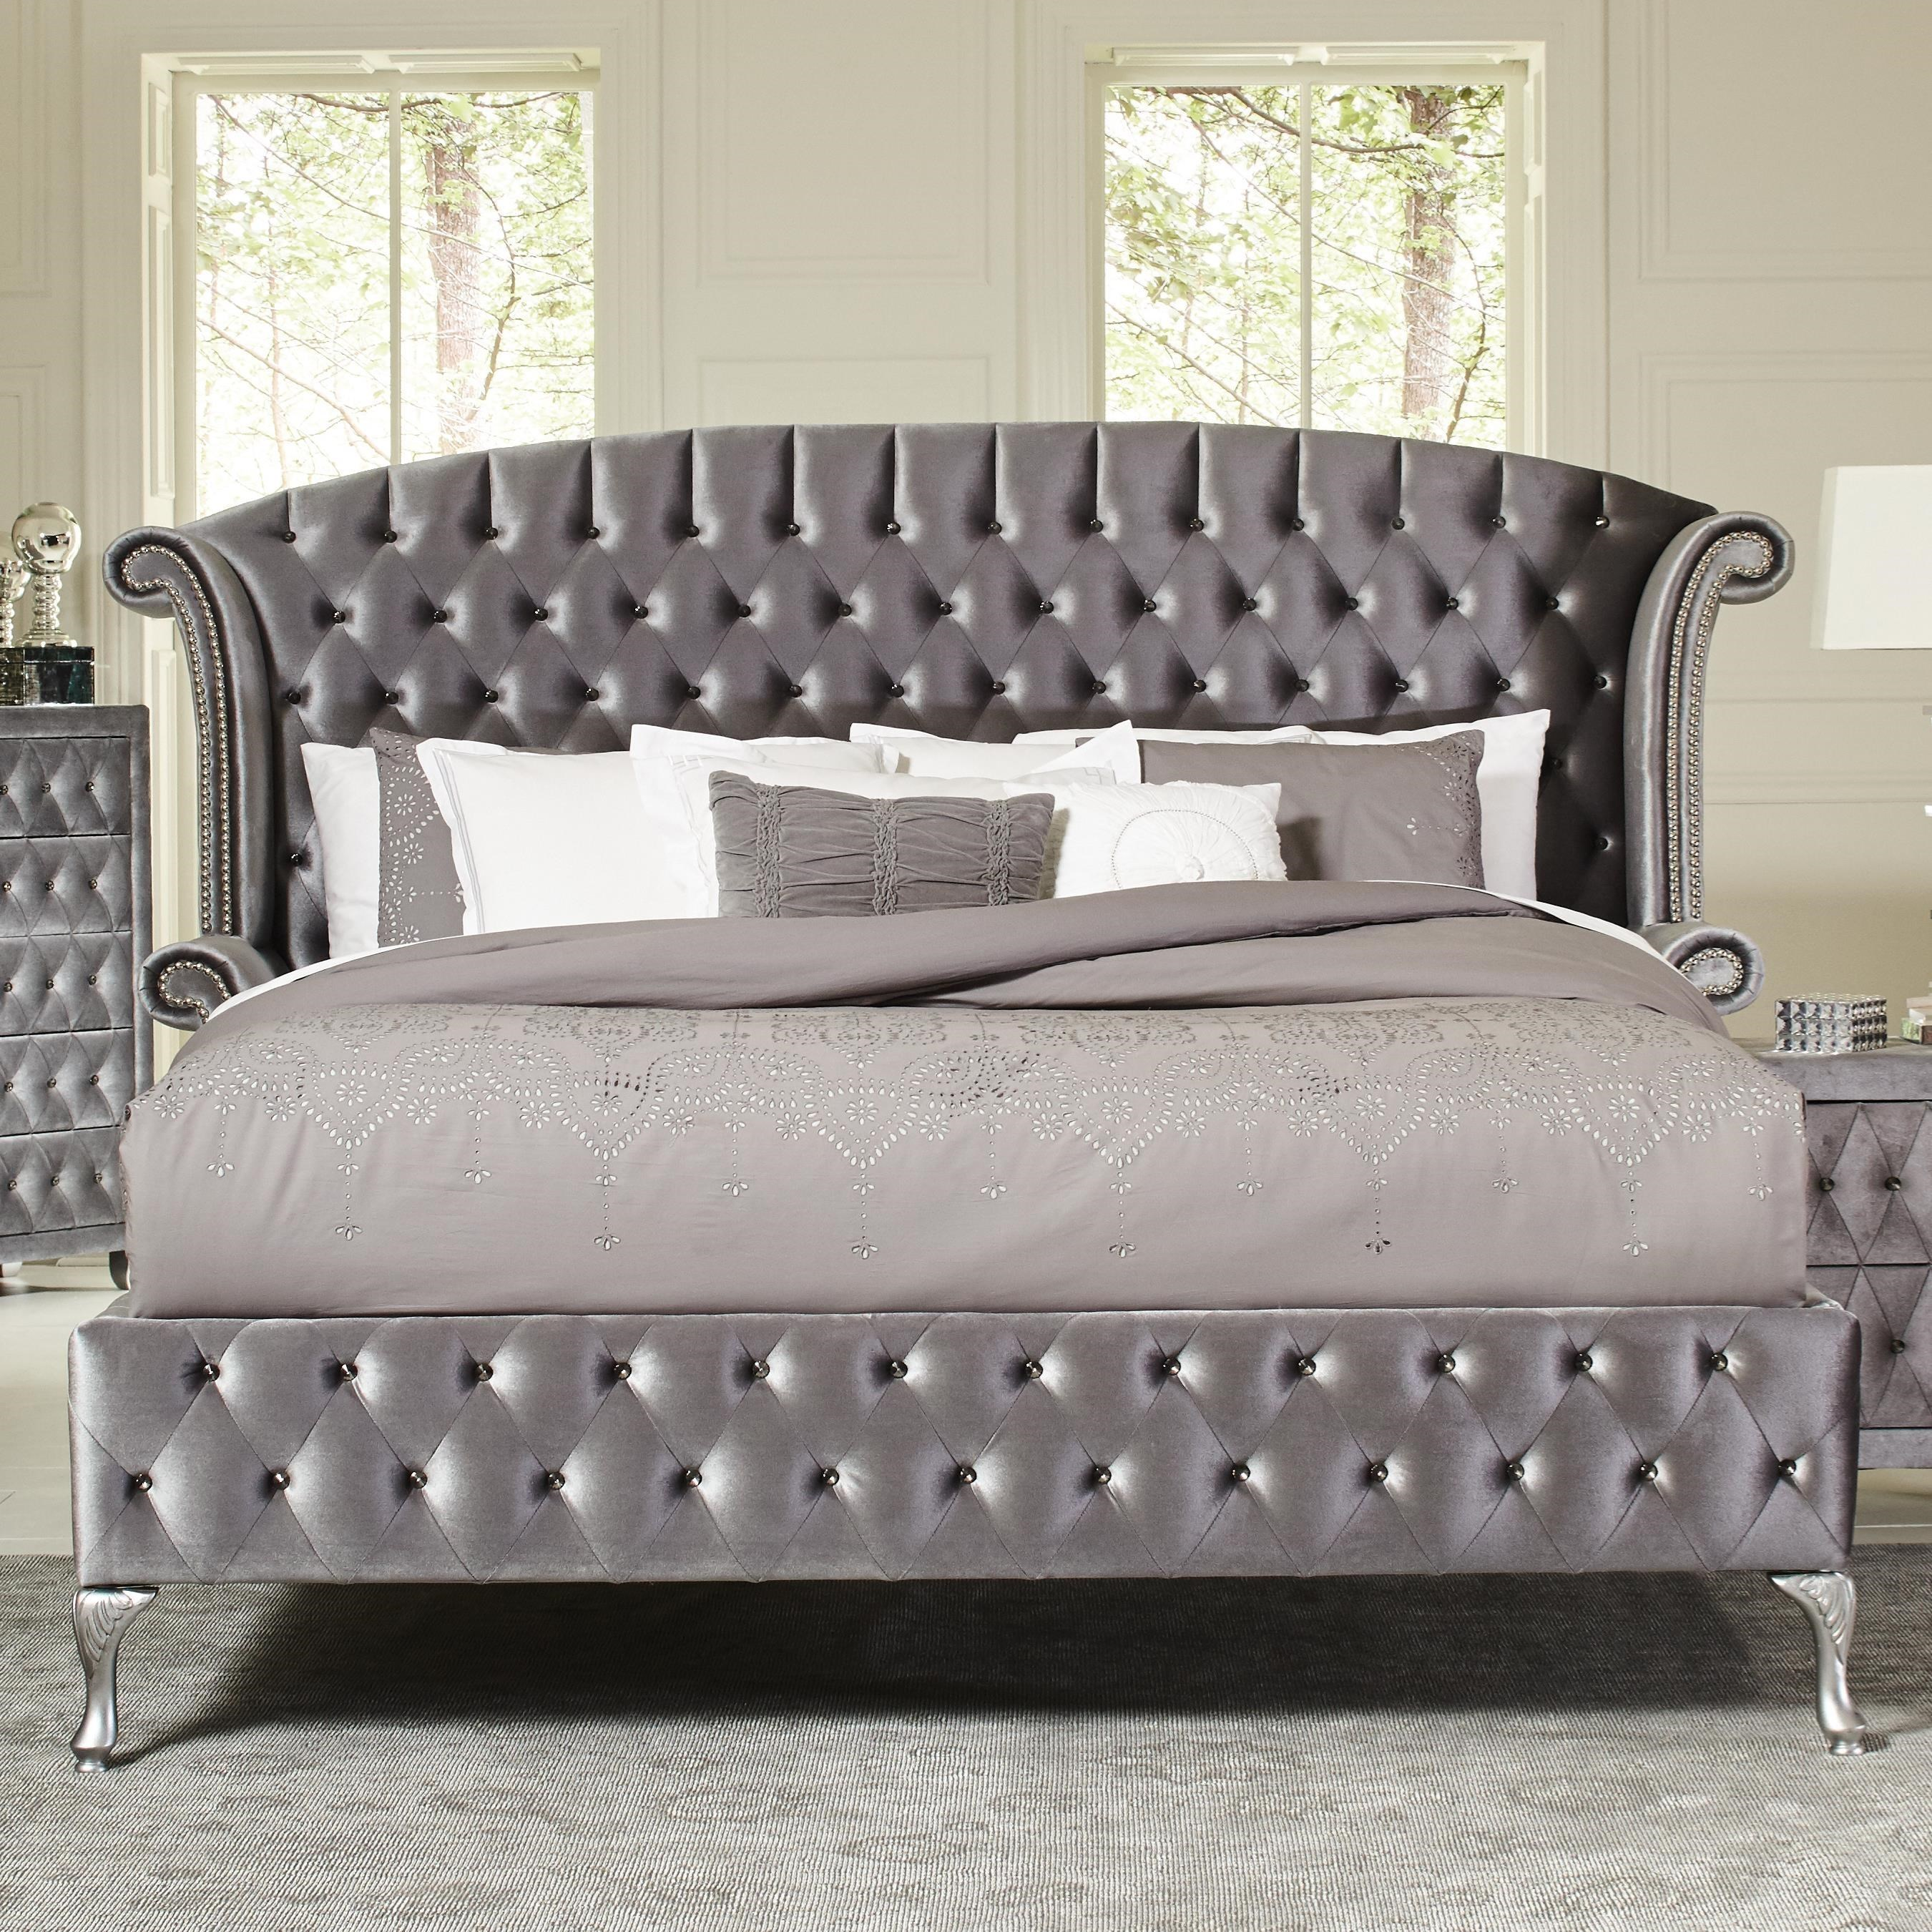 coaster deanna upholstered queen bed with nailhead trim and button tufting - Upholstered Queen Bed